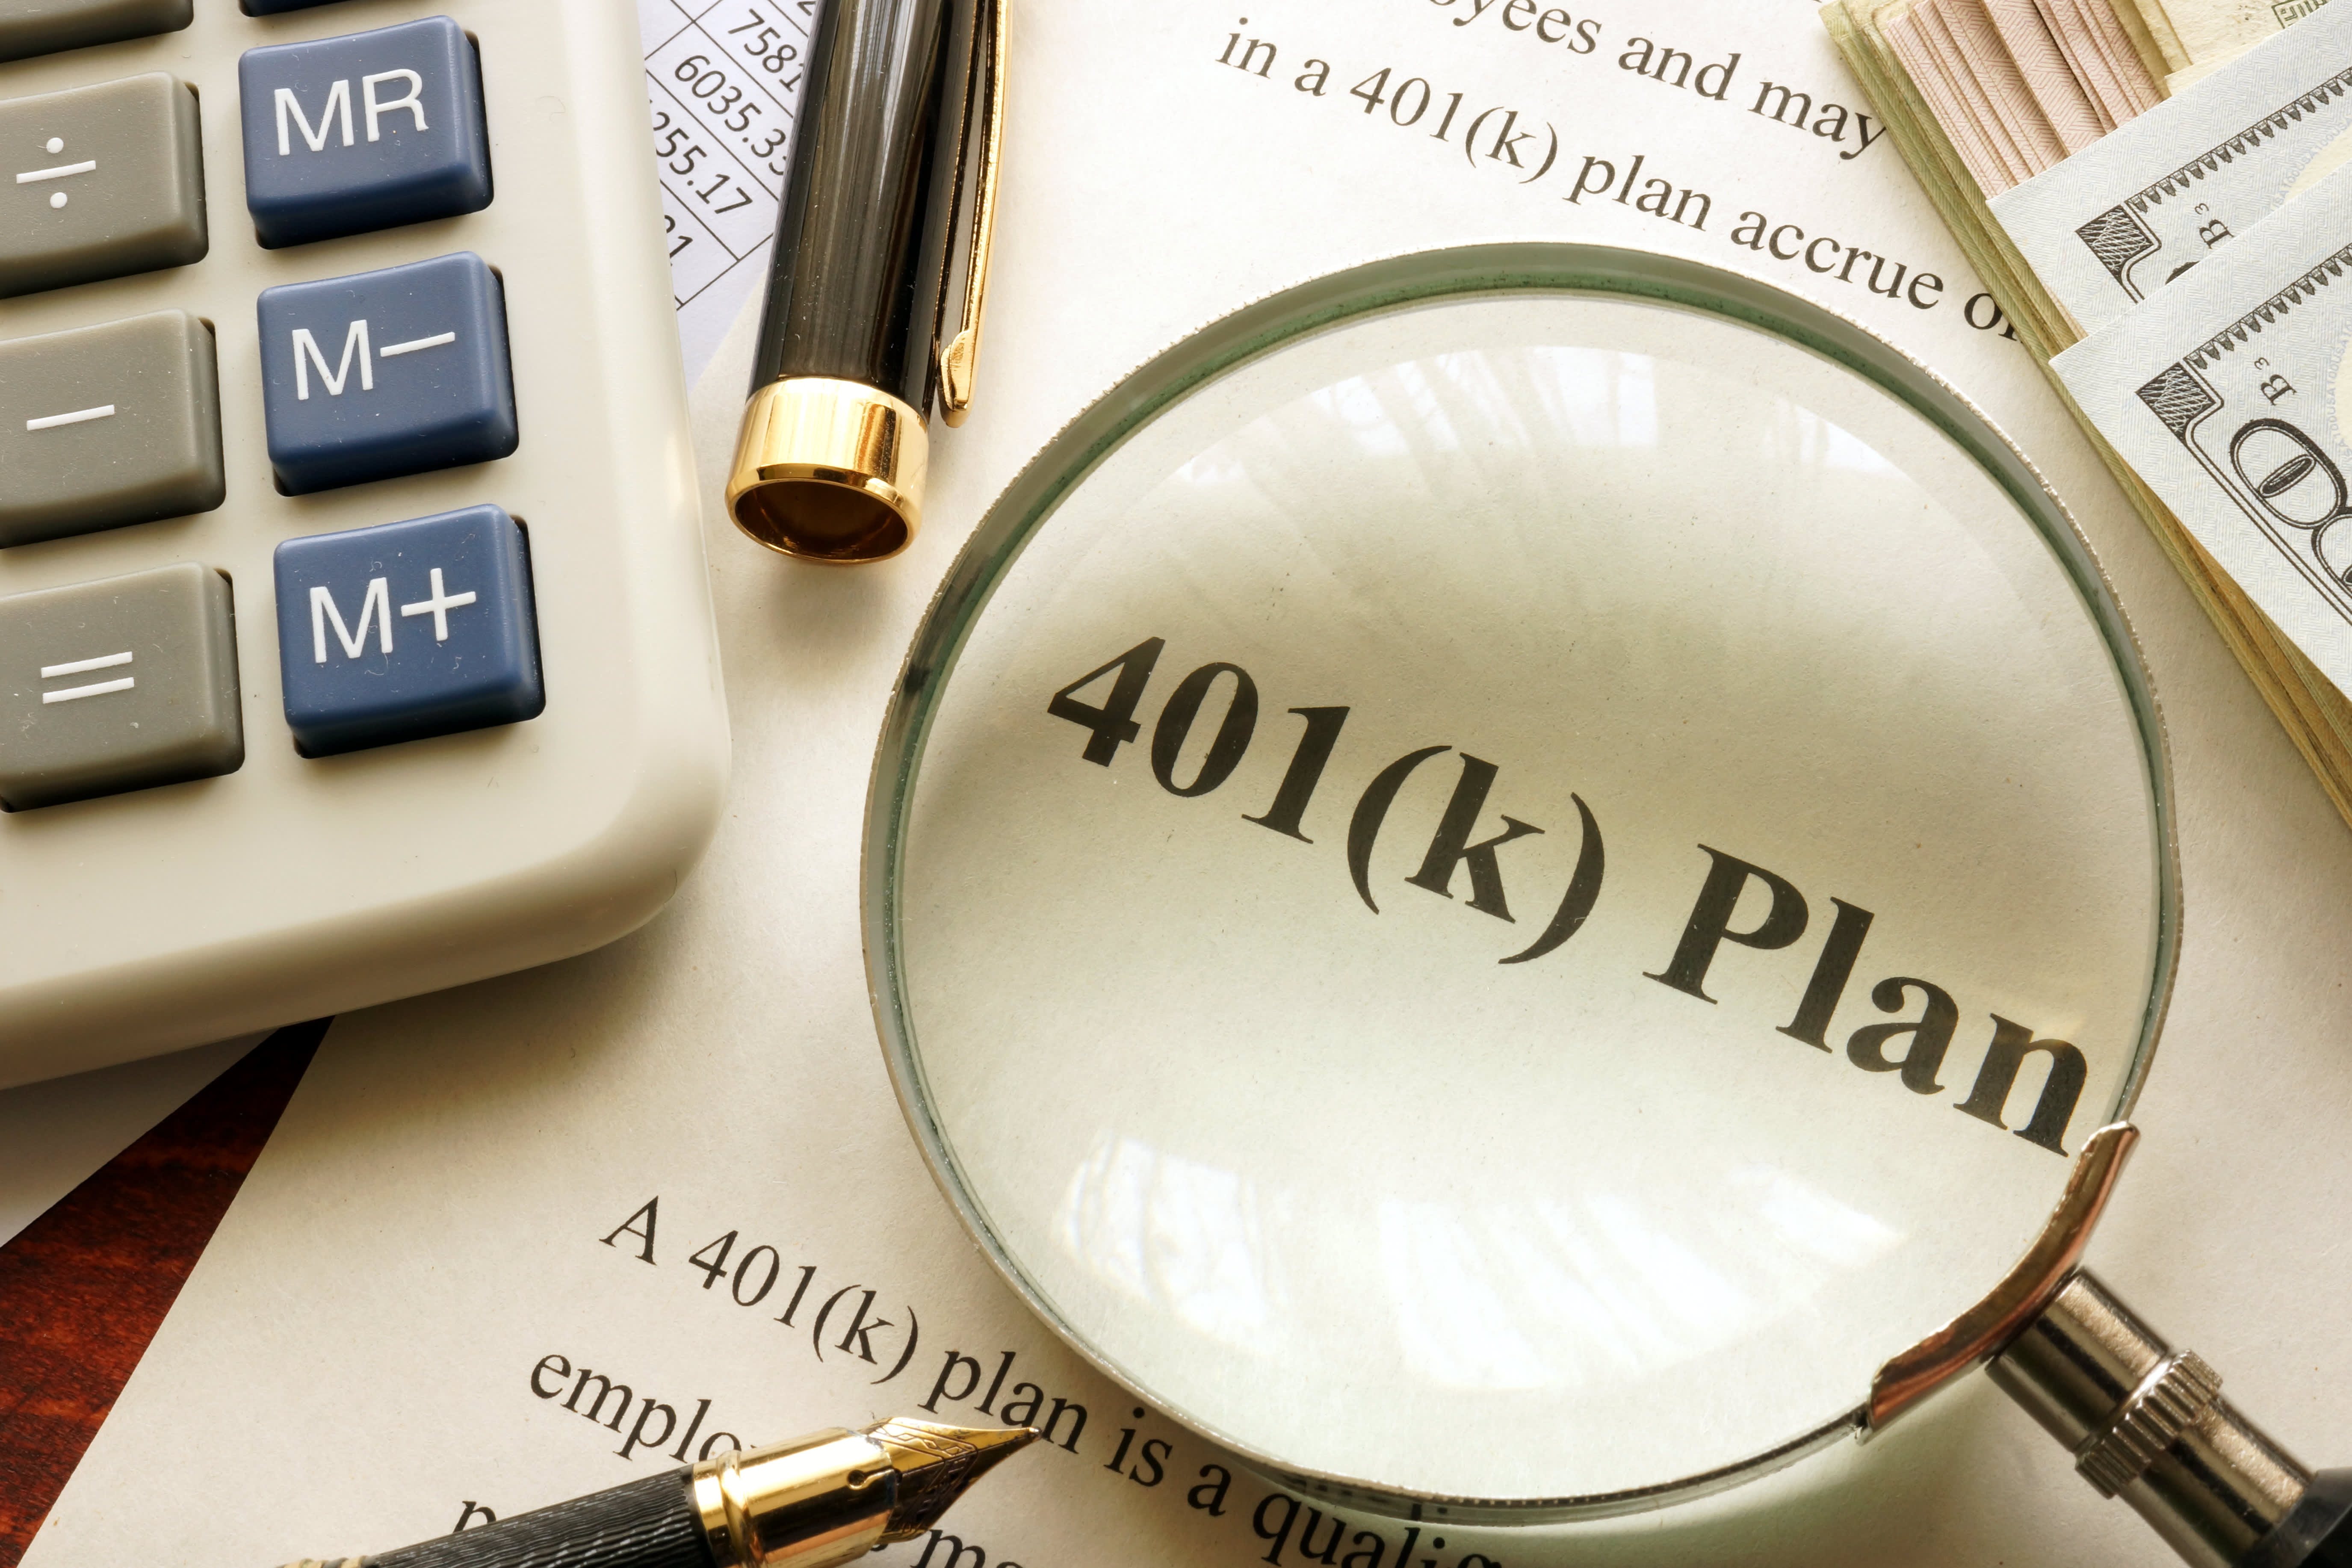 Finally, relief for 40 million Americans without 401(k) plans